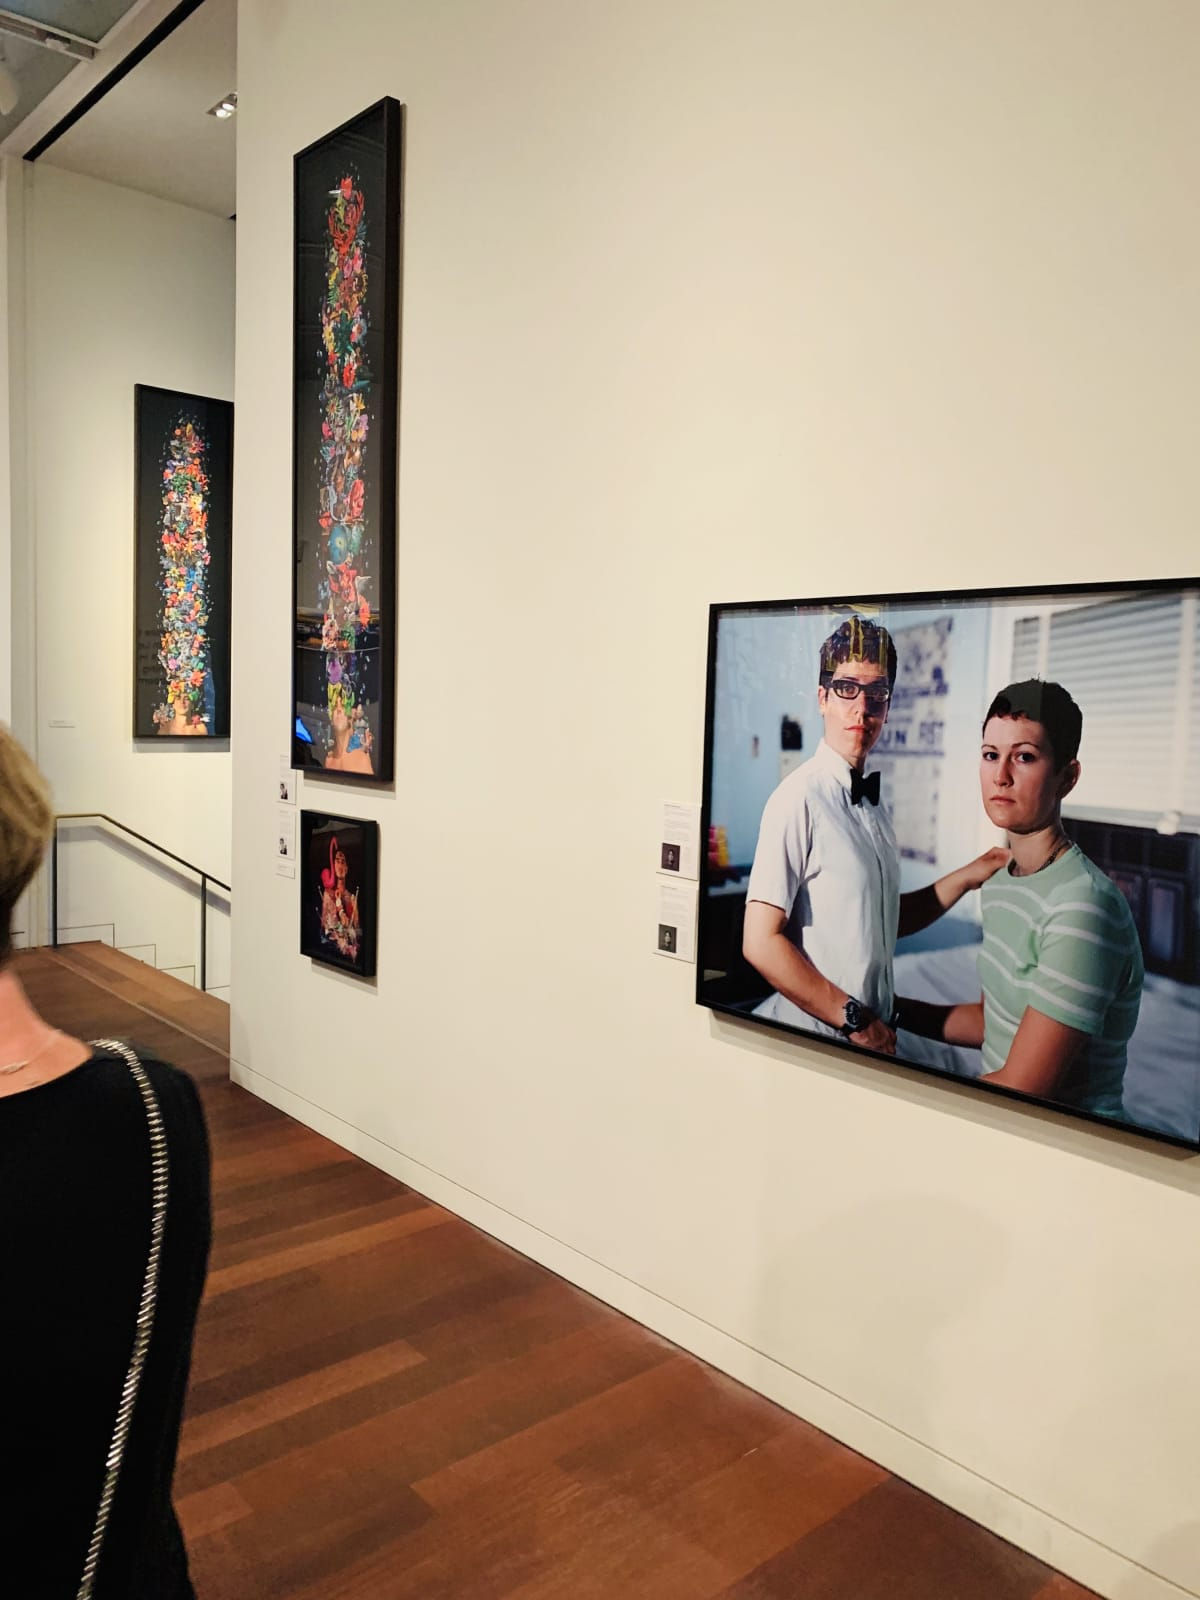 Andy Warhol: Portraits and Transamerica/n: Gender, Identity, Appearance Today